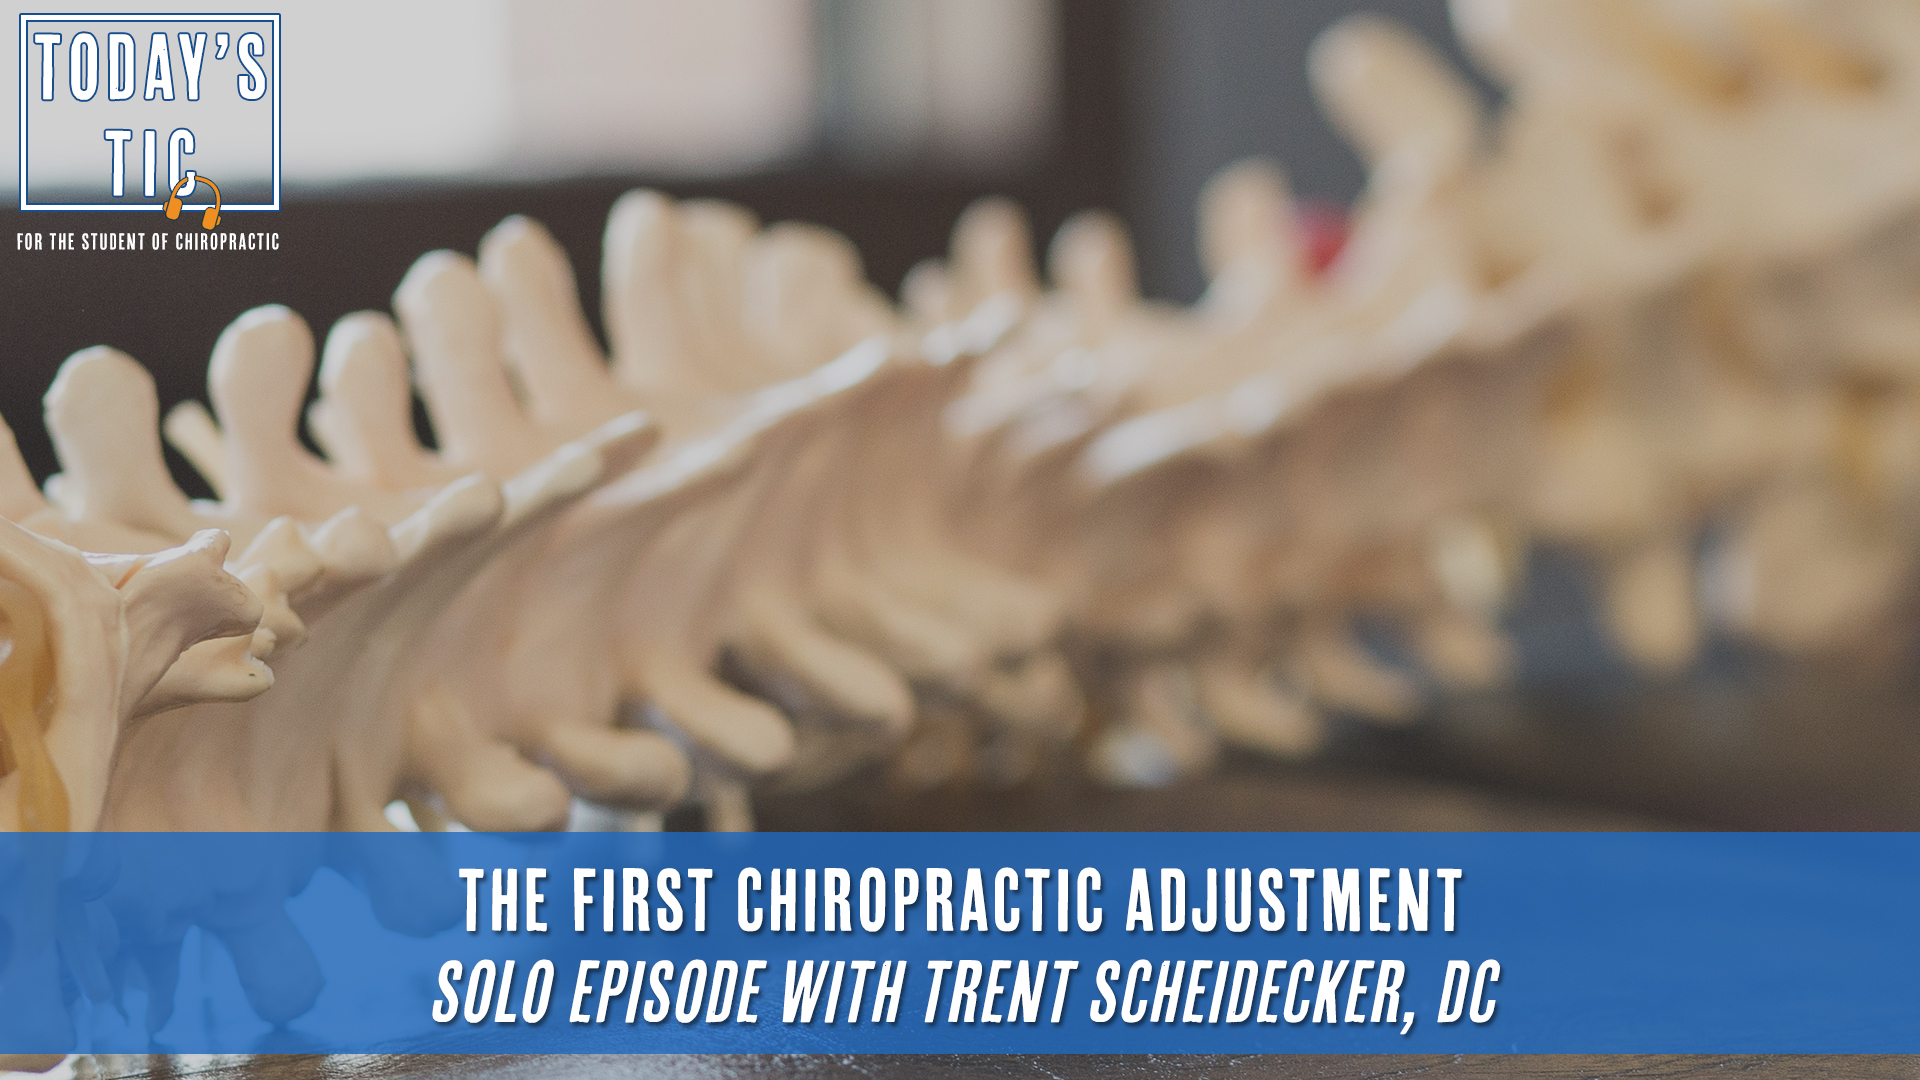 The First Chiropractic Adjustment